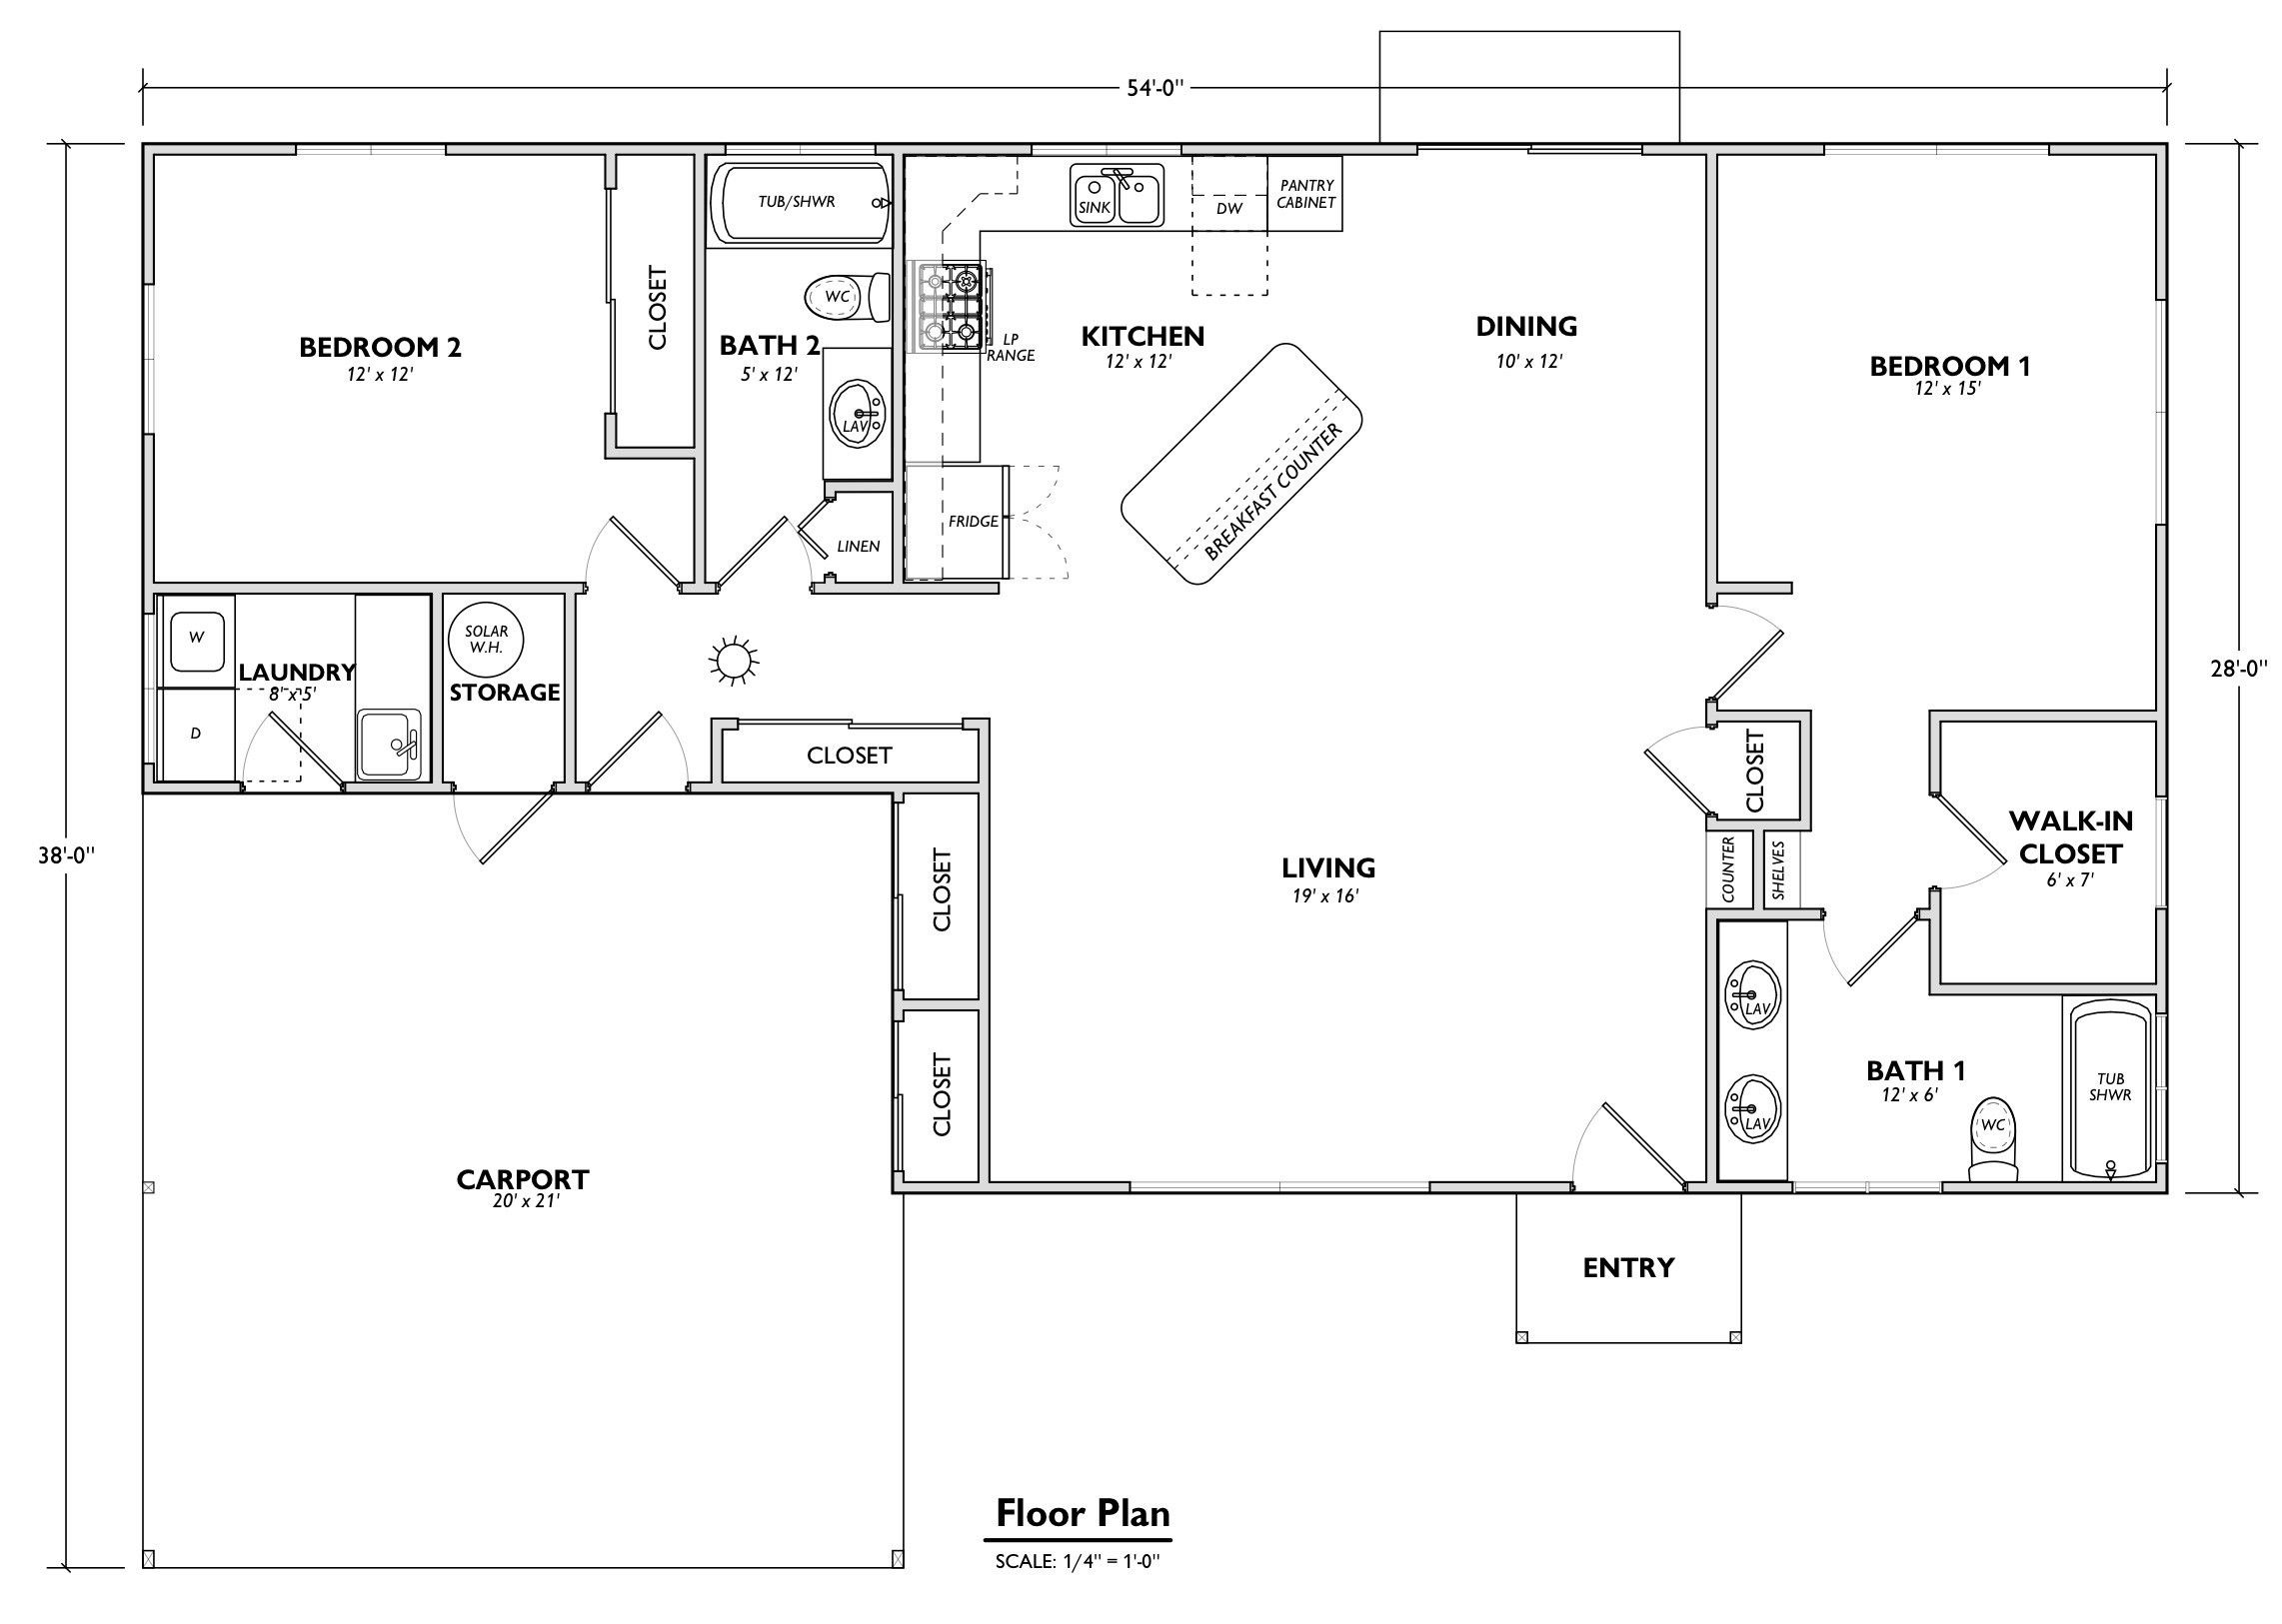 Standard Master Bedroom Size Minimum Kitchen 12 12 Furniture Layout For King Sizes Style Ideas A Master Bedroom Plans Kids Bedroom Remodel Bathroom Floor Plans